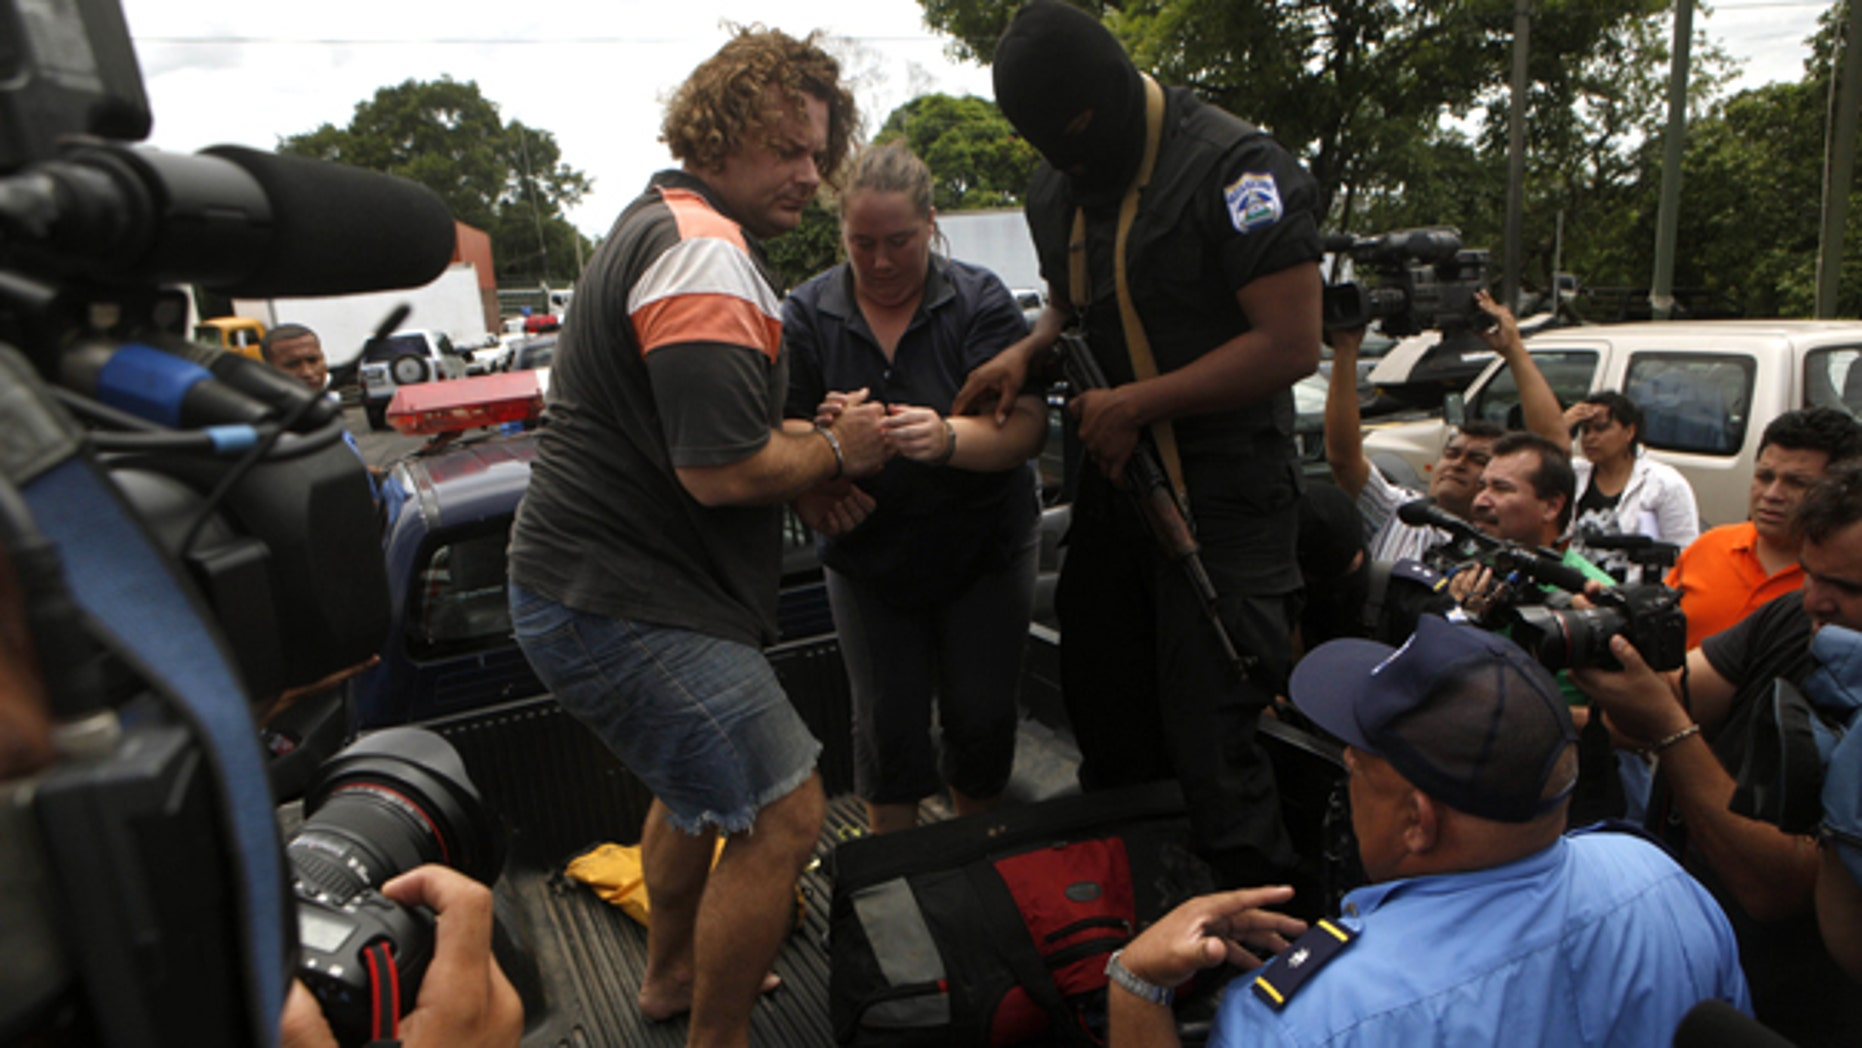 July 29: Detainees identified by Nicaraguan authorities as William Adolfo Cortez and his wife Jane Cortez prepare to walk down a police vehicle before being extradited to Panama from Nicaragua. (AP)